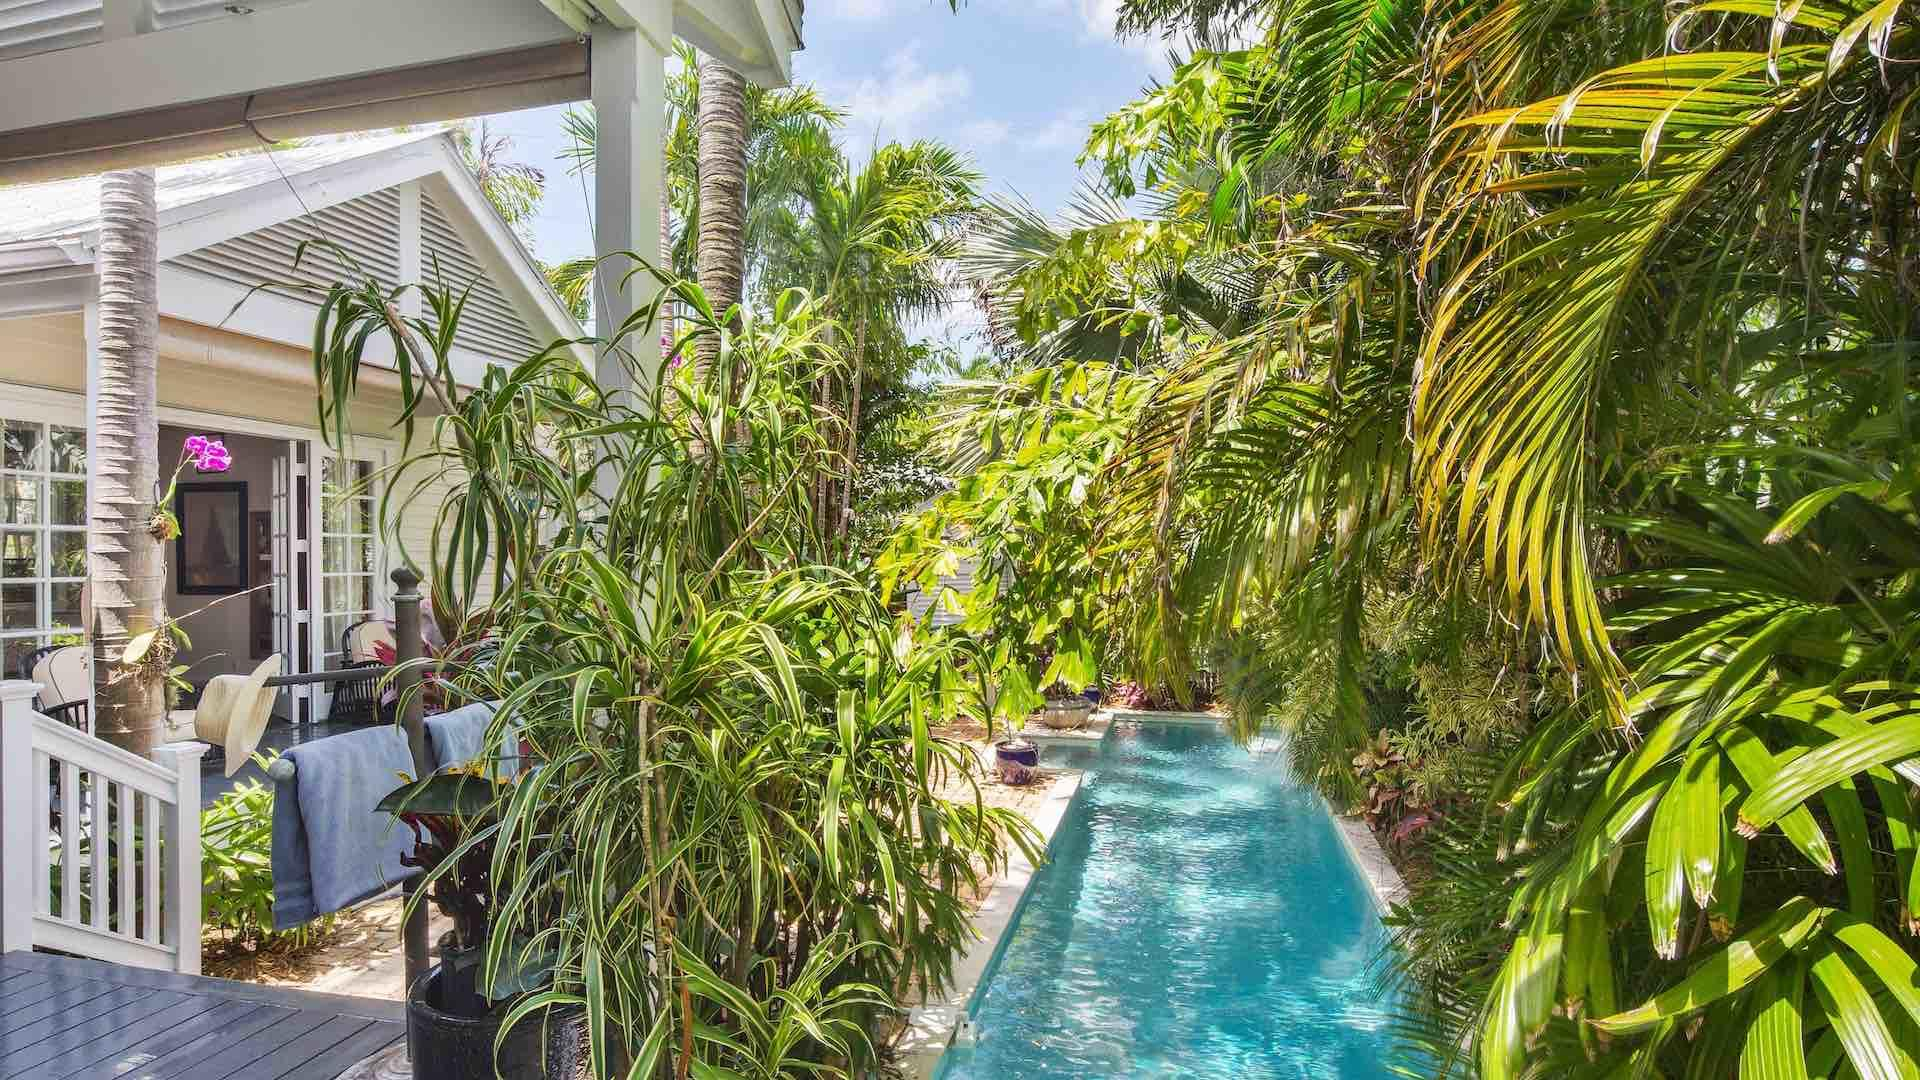 The entire backyard has lush lanscaping, which provides complete privacy...